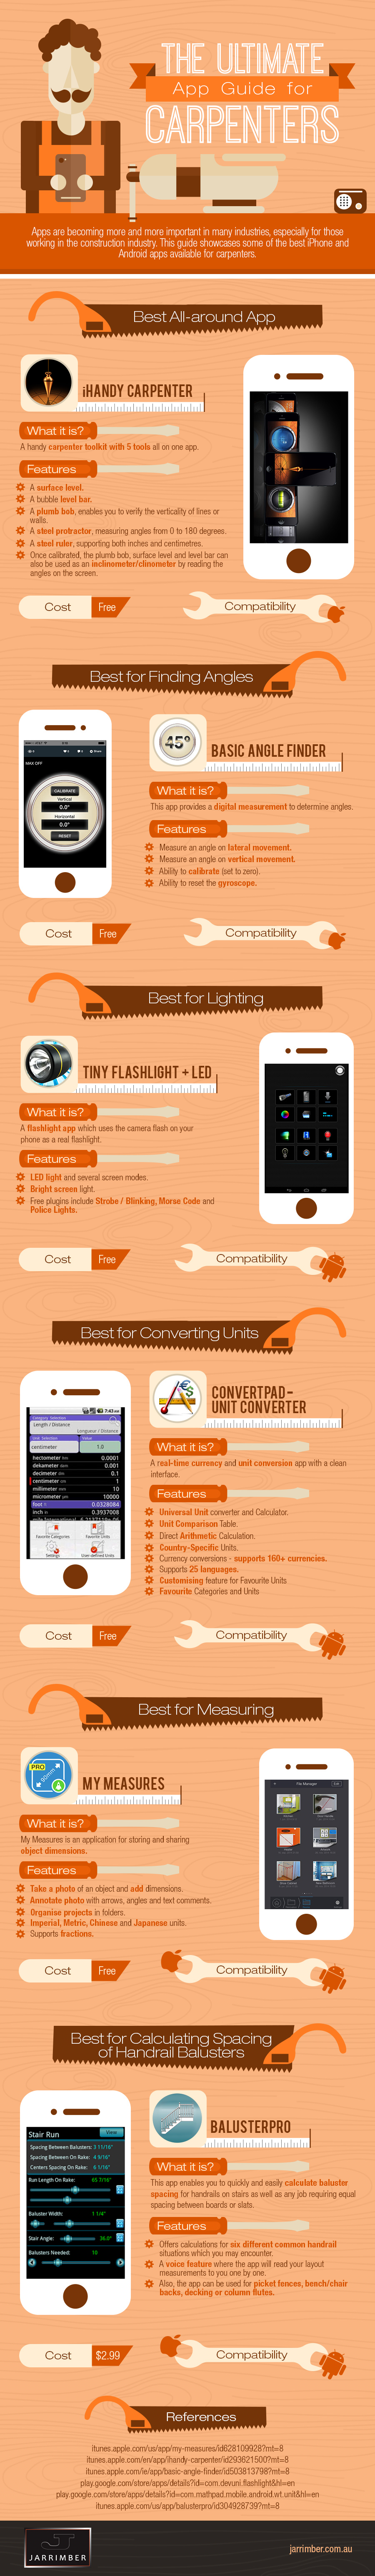 Infographic- App Guide for Carpenters.jpg